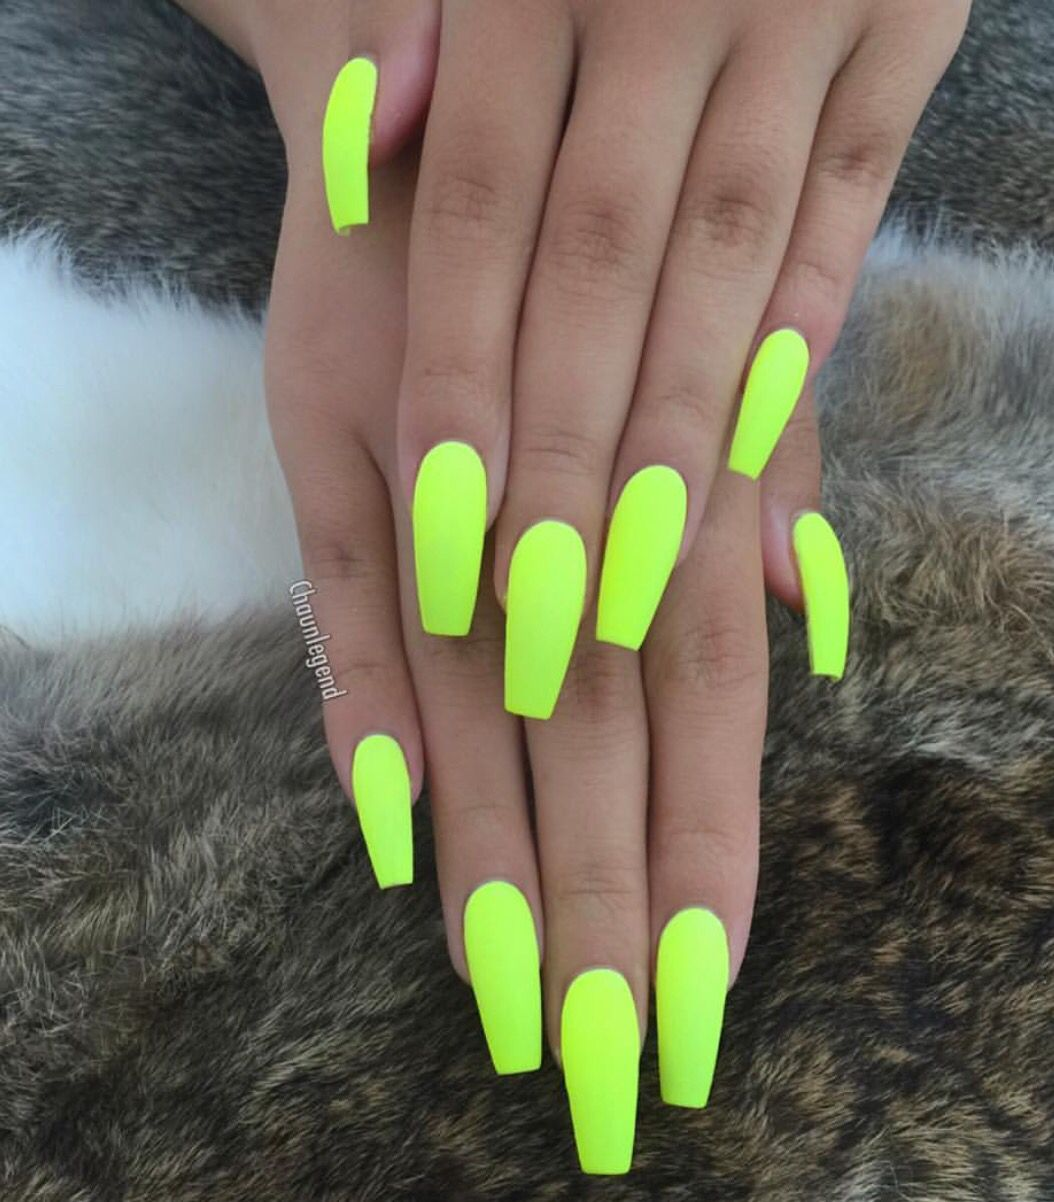 Summer Neon Nails | Mani Pedi | Pinterest | Neon nails, Neon and Summer